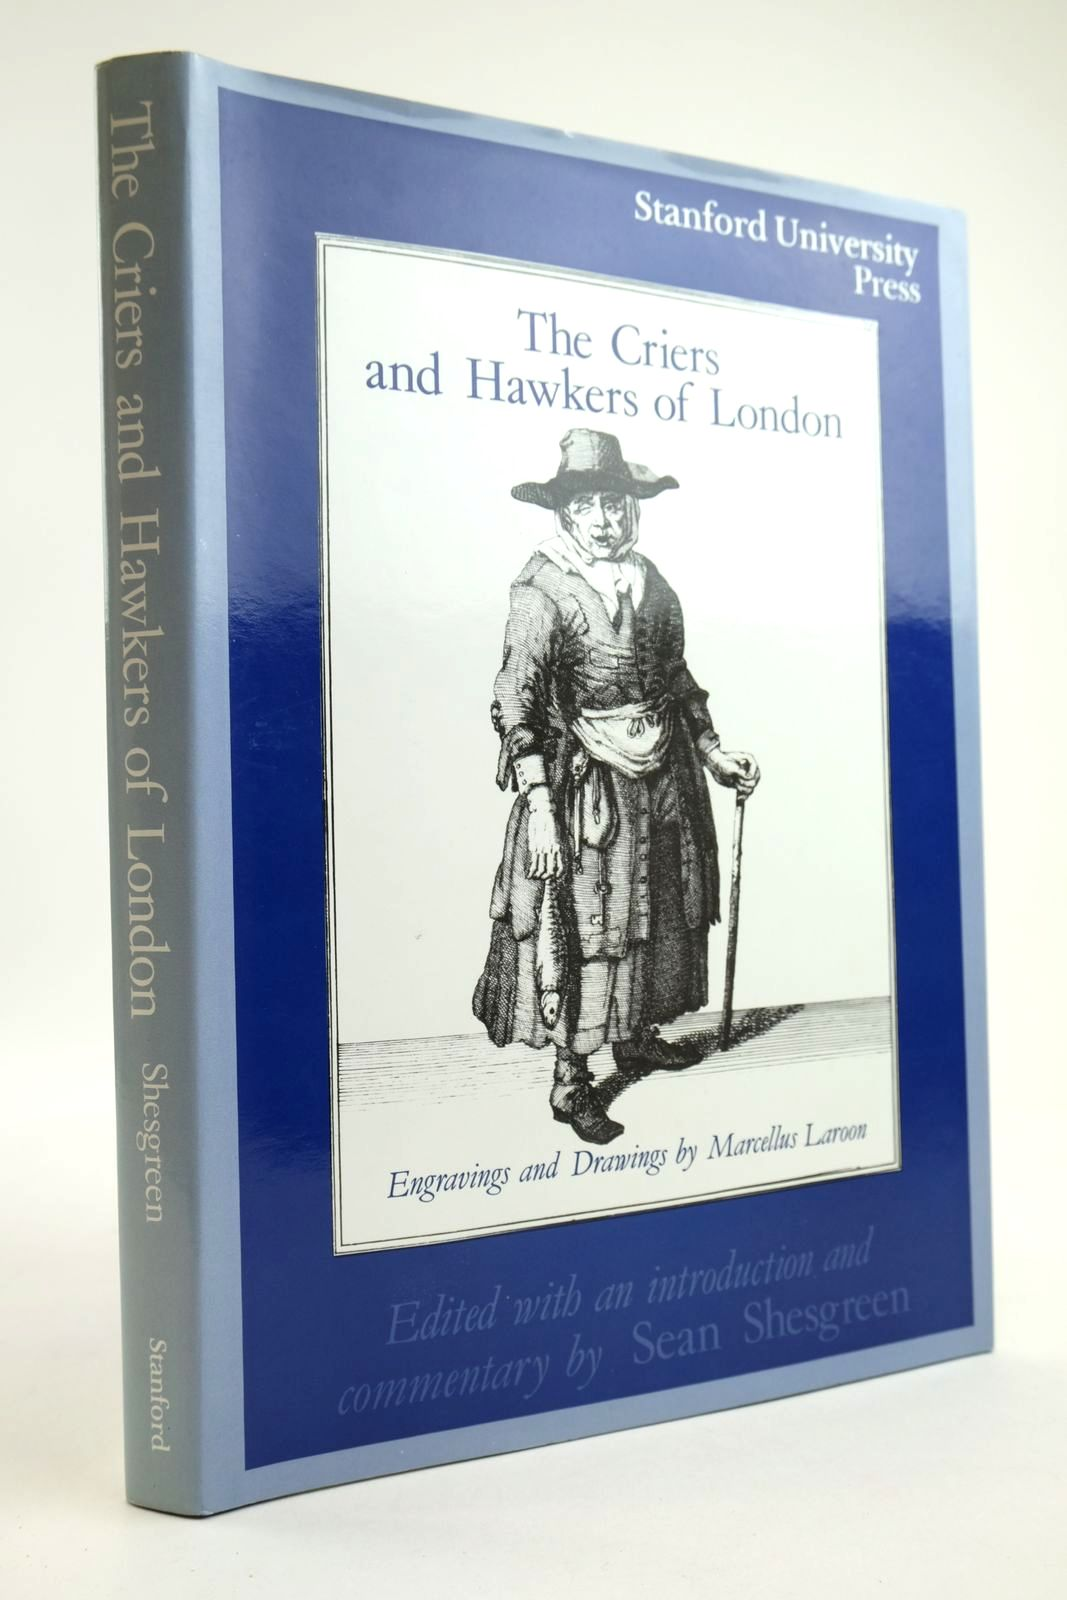 Photo of THE CRIERS AND HAWKERS OF LONDON written by Shesgreen, Sean illustrated by Laroon, Marcellus published by Stanford University Press (STOCK CODE: 2134152)  for sale by Stella & Rose's Books